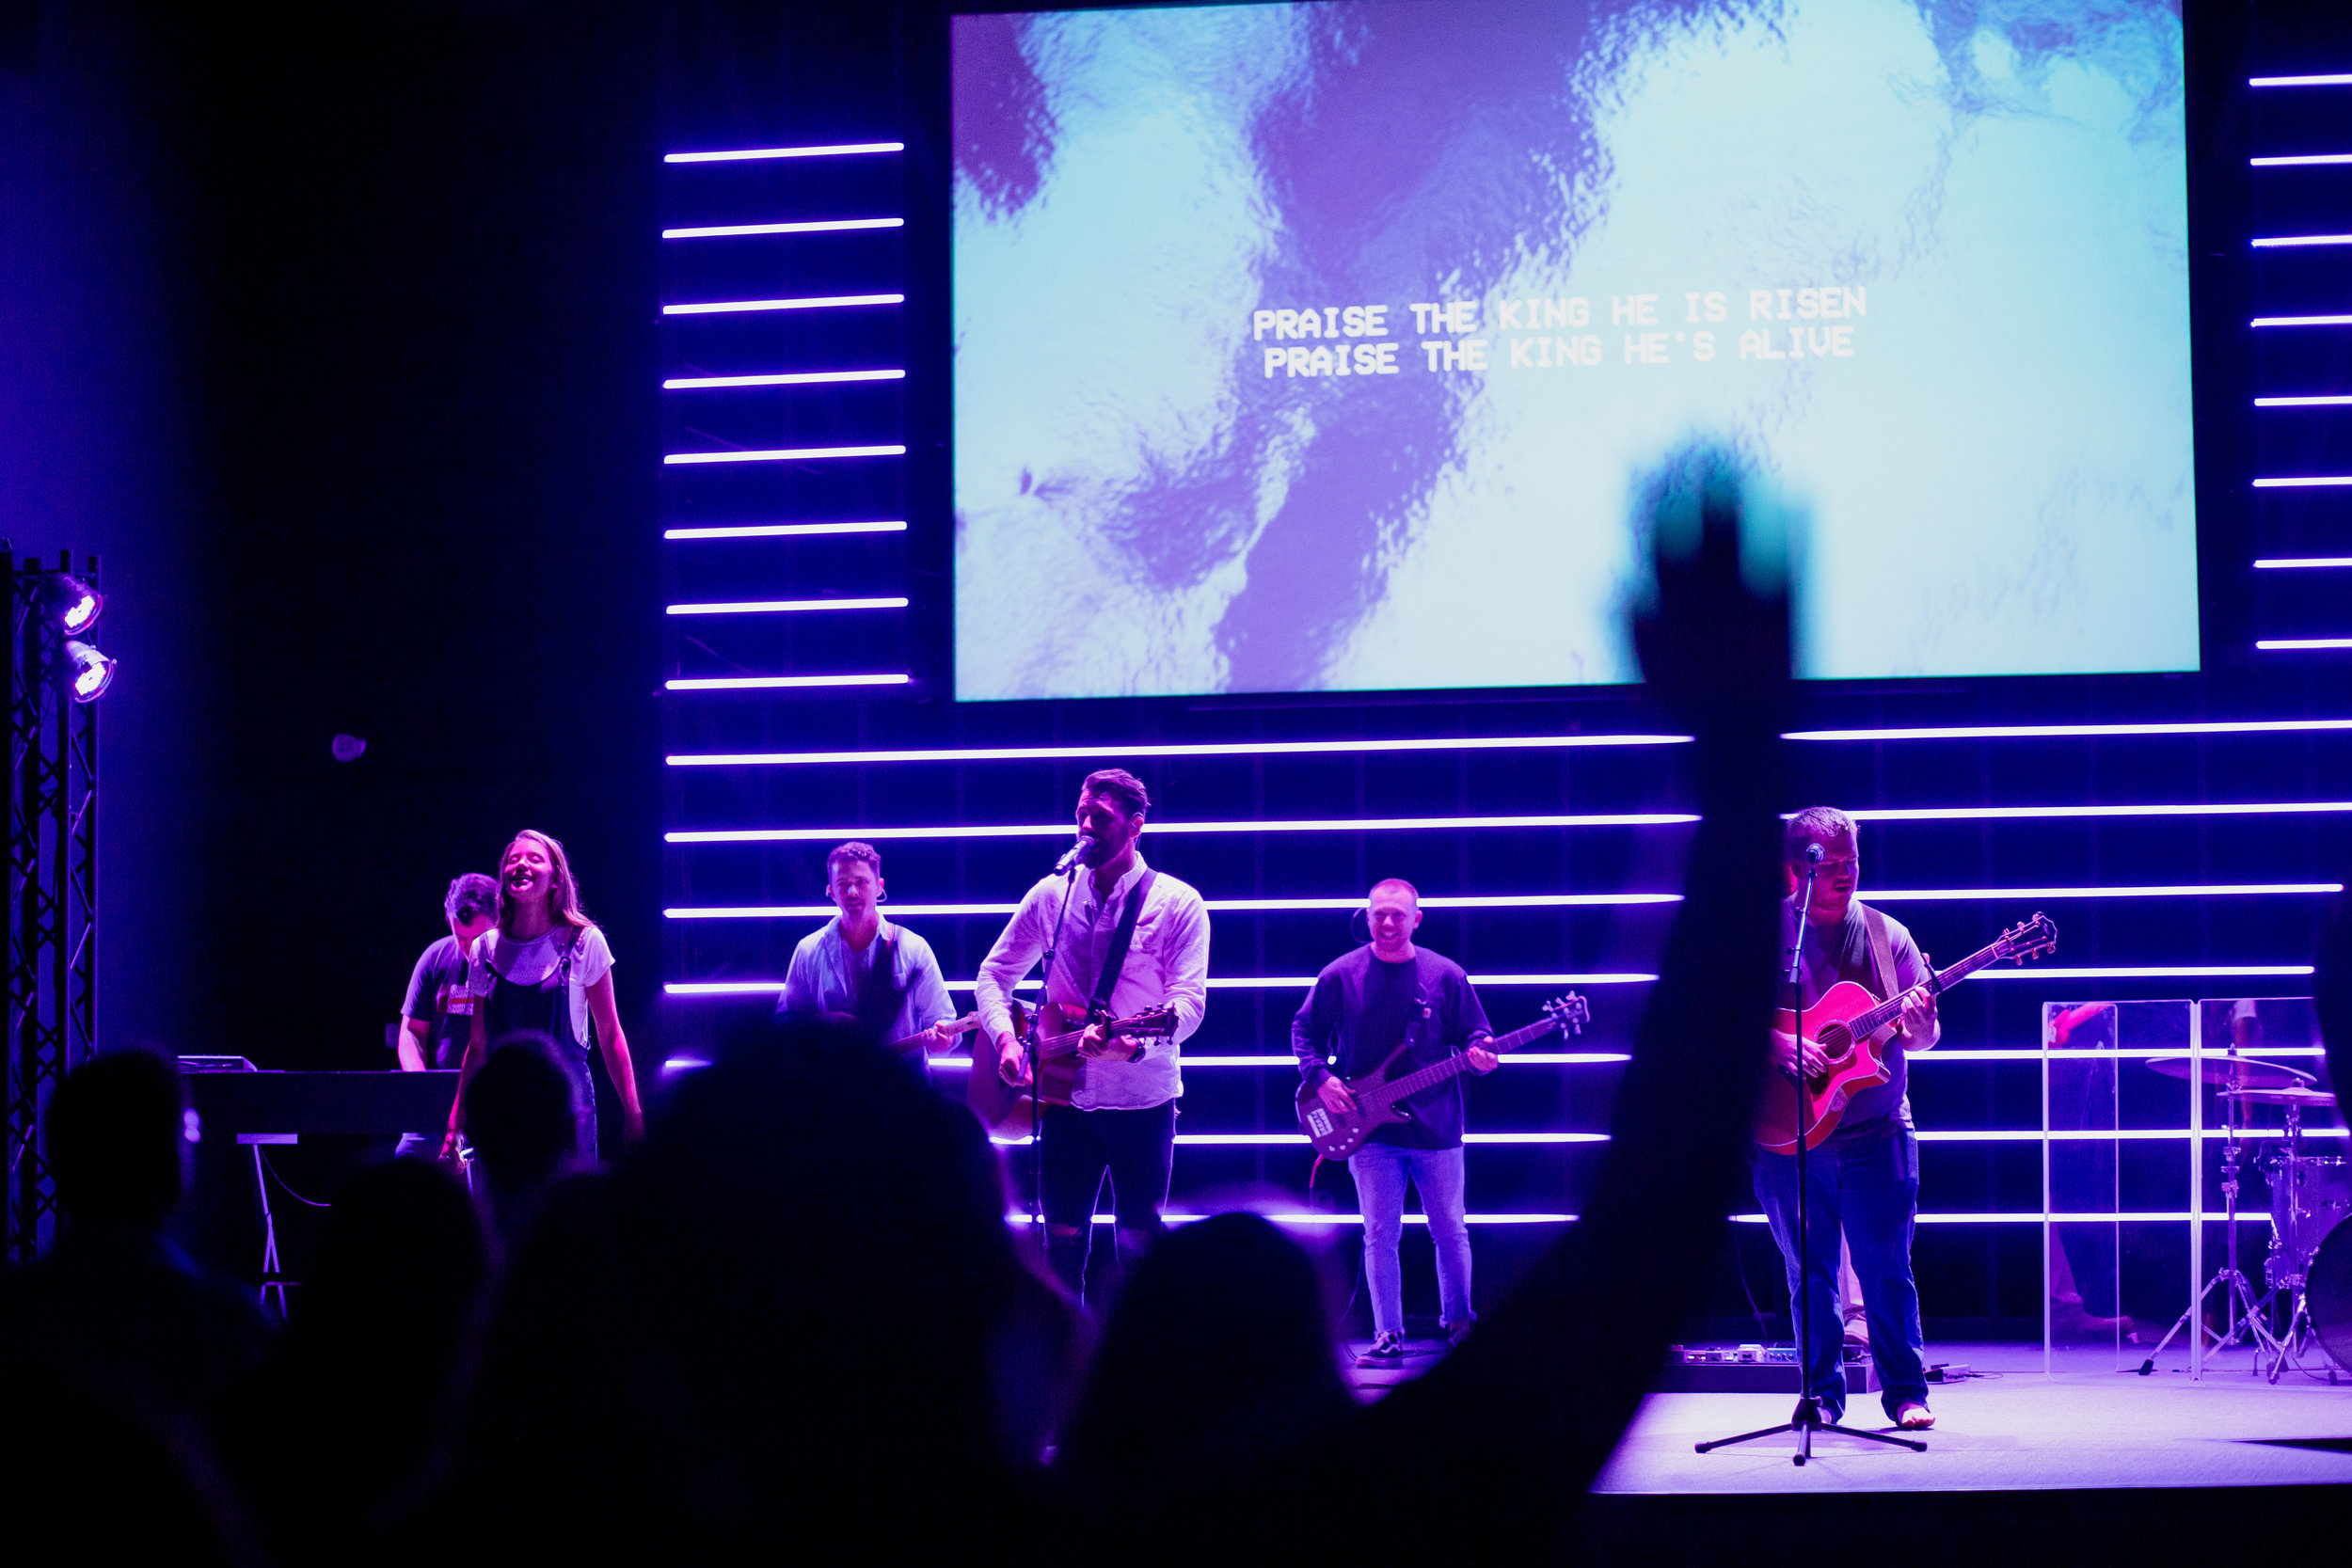 WE WORSHIP AUTHENTICALLY - We spend some time each service worshipping through music and giving of our offering. We'll play songs you'd hear on the radio. We'll sing hymns that have been sung for centuries, worship songs we've written, and songs from other churches around the world; all with the goal of helping people just like you encounter Jesus. During the offering, we hope you'll fill out a ConnectCard and let us know you were here! This will help us provide you with any information about the church, our ministries, and opportunities to connect with others at Arrowhead.